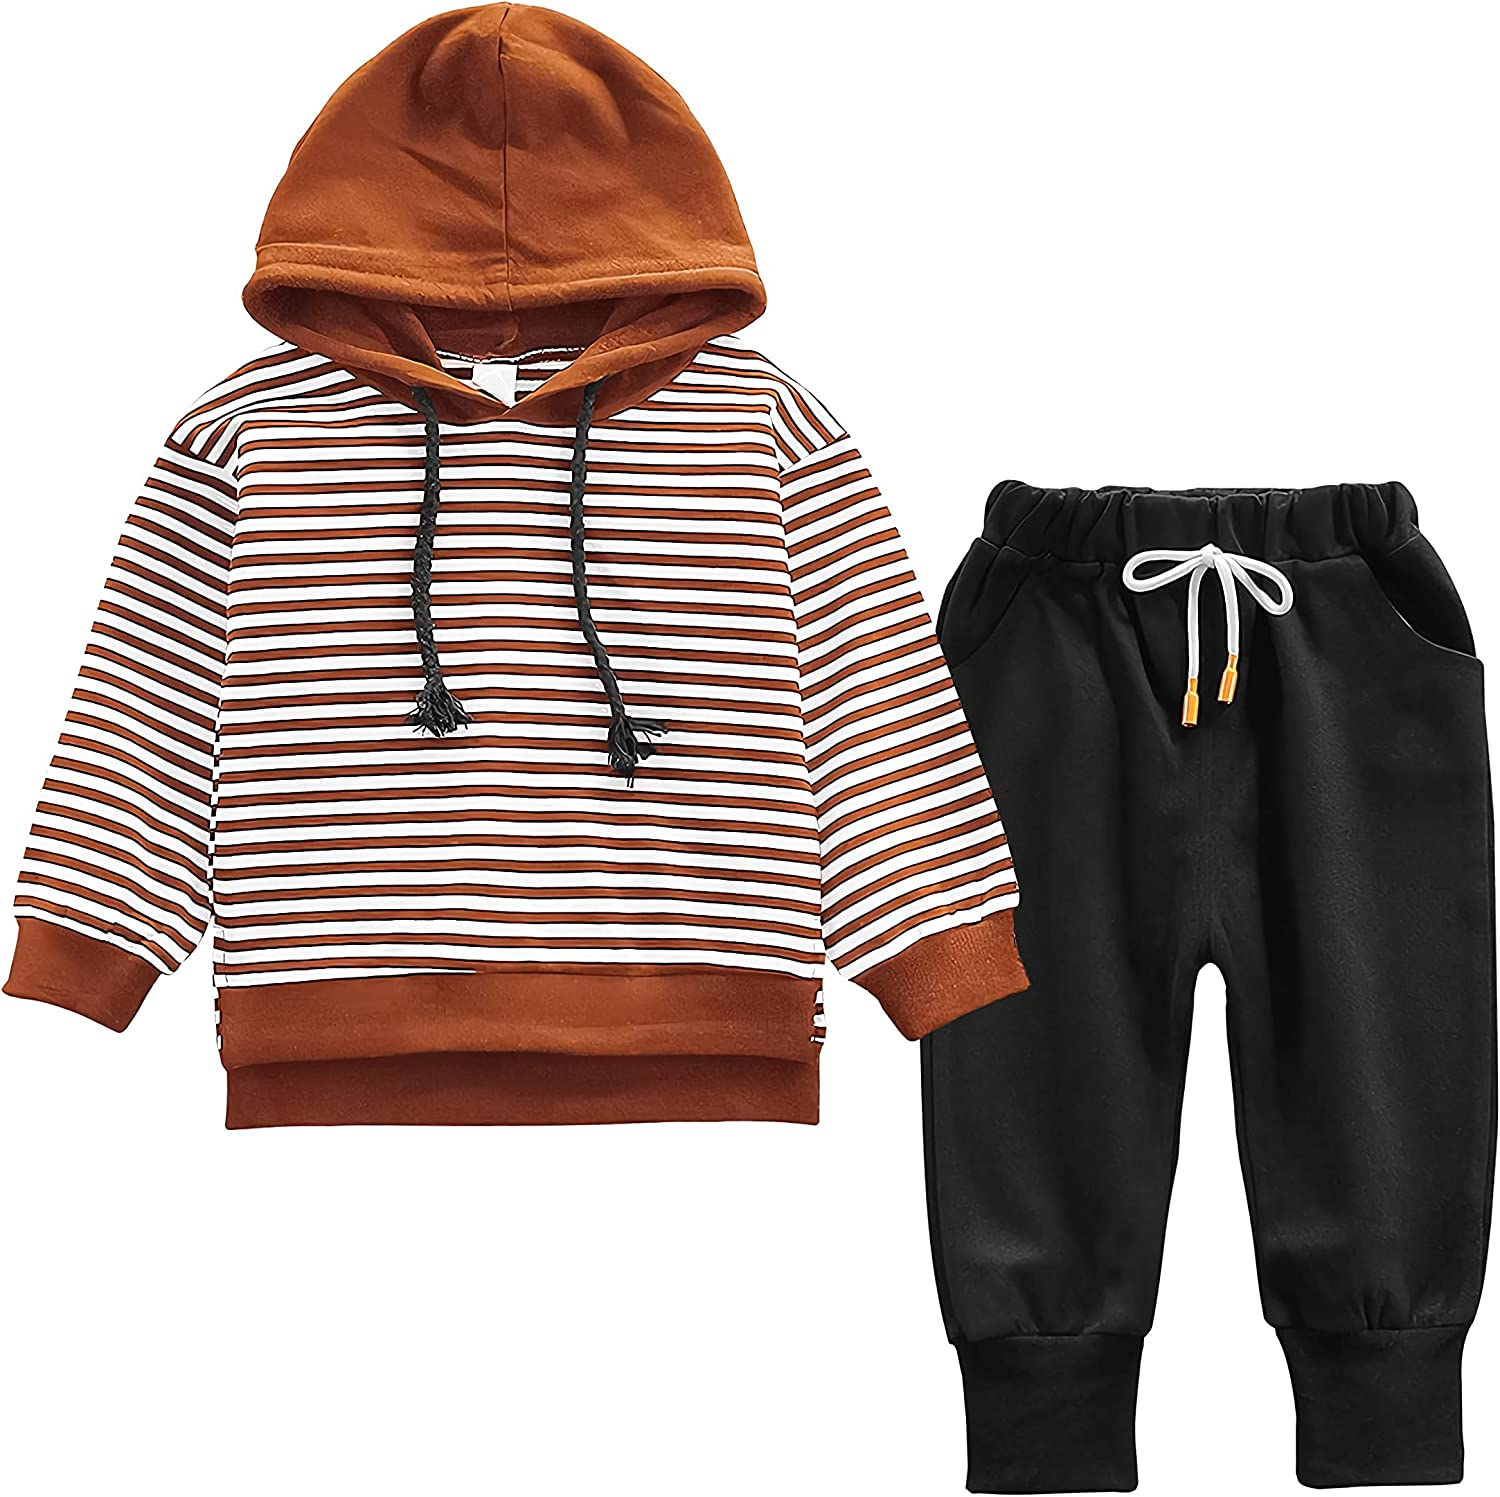 Nwada Toddler Boy Hoodies and Sweatpants Sets Kids Two-Piece Fashionable Jogger Outfit Age 12 Months to 5 Years